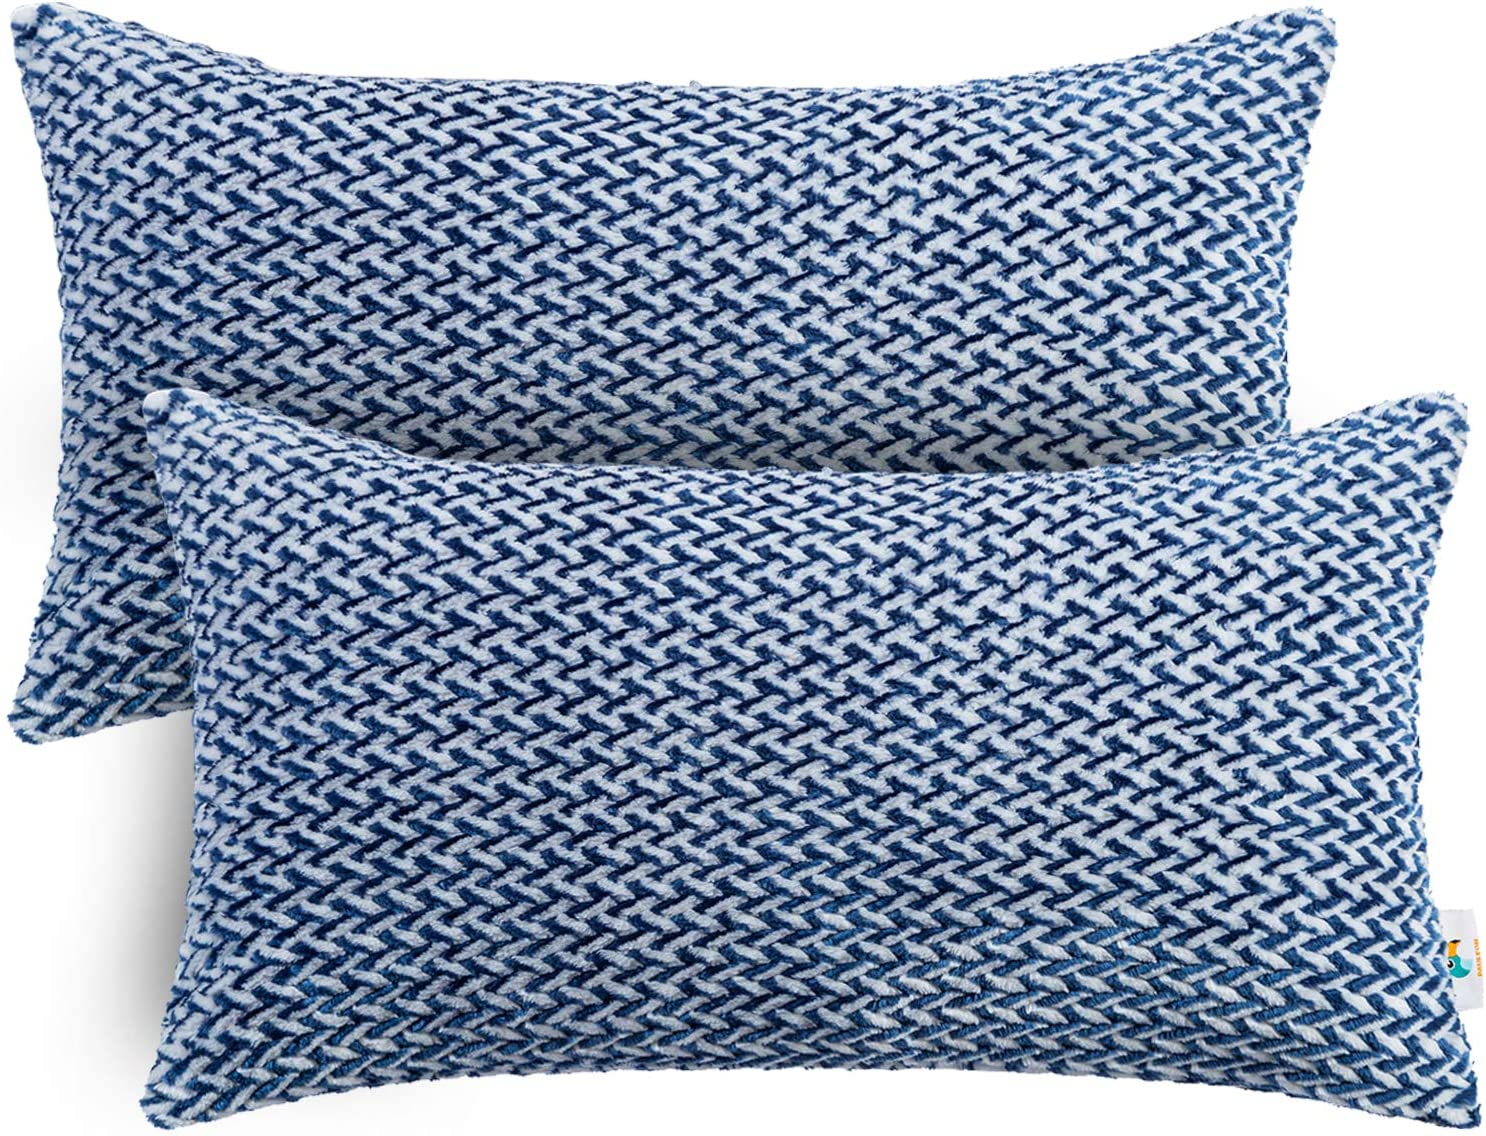 PAULEON Throw Pillow Covers 12x20 Accent Pillows Sofa Perfect for Couch Decorative Cushion Cases Bed Сhevron Pattern Set of 2 Aubergine and White Fluffy Fiber